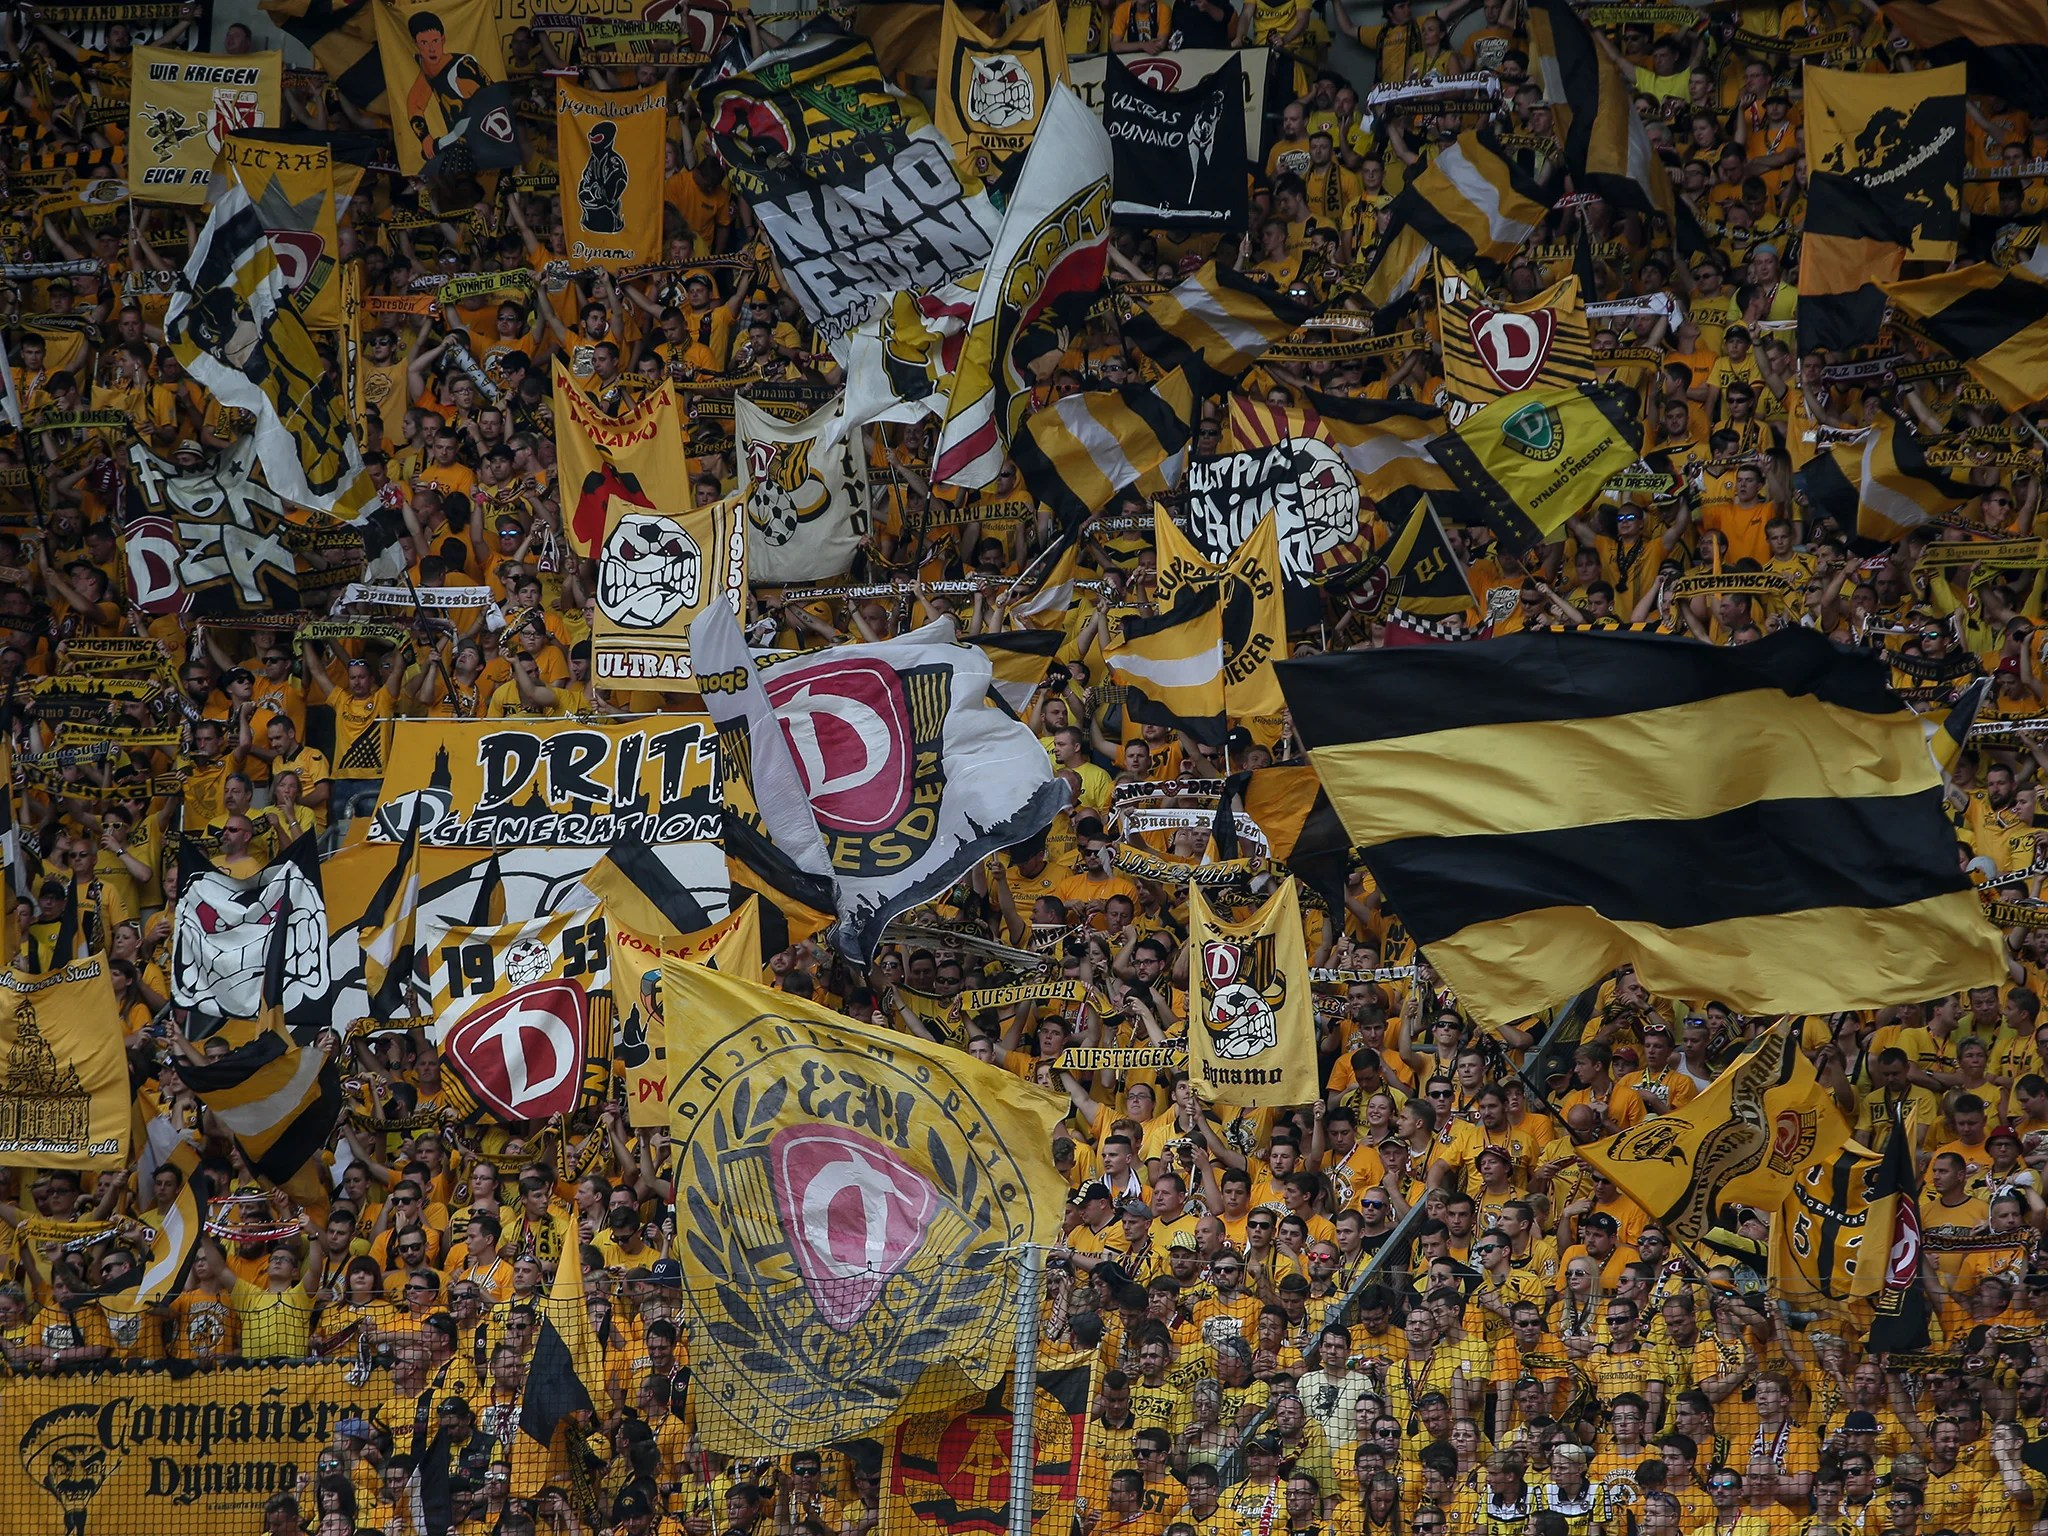 Bettwäsche Dynamo Dresden Dynamo Dresden Fined For Throwing Bull's Head Onto Pitch